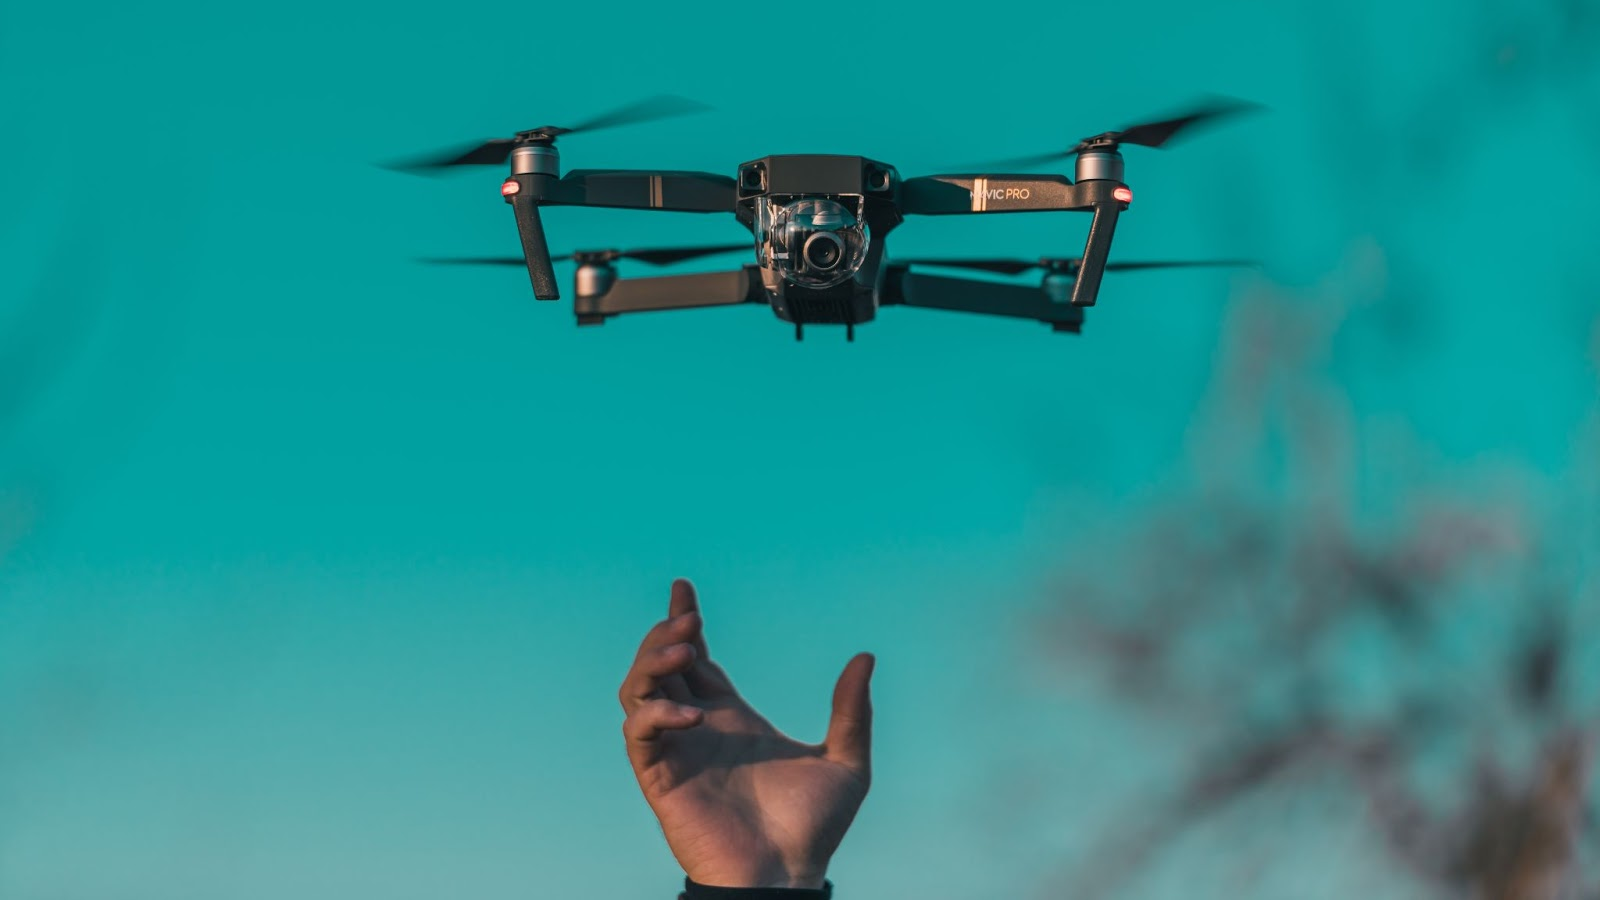 Using technology like drones in Parks and Recreation Centers